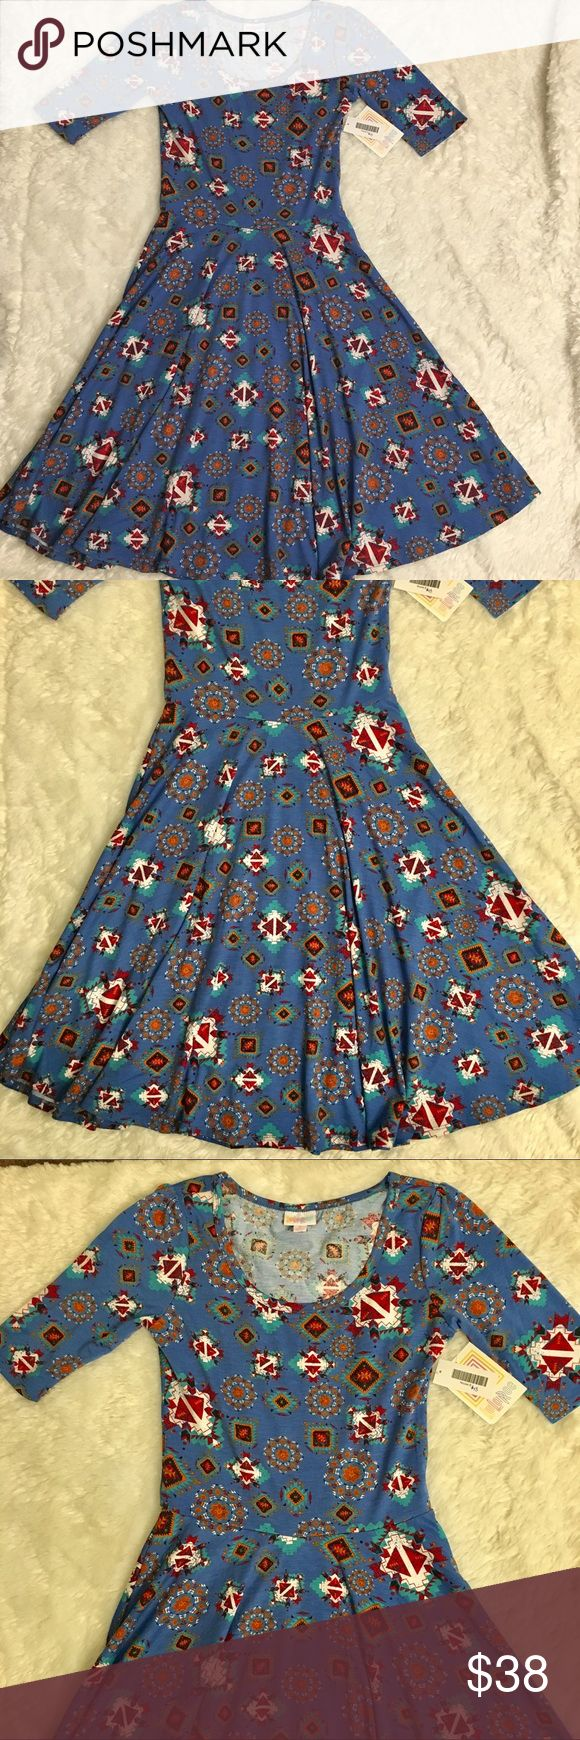 Lularoe Nicole Blue Geometric Aztec Print Dress Lularoe Nicole Blue Geometric Aztec Print Dress. New with tags. Size Small. Fast shipping. Smoke free and pet free home. No trades or modeling. Bundle to save. Offers welcome! LuLaRoe Dresses